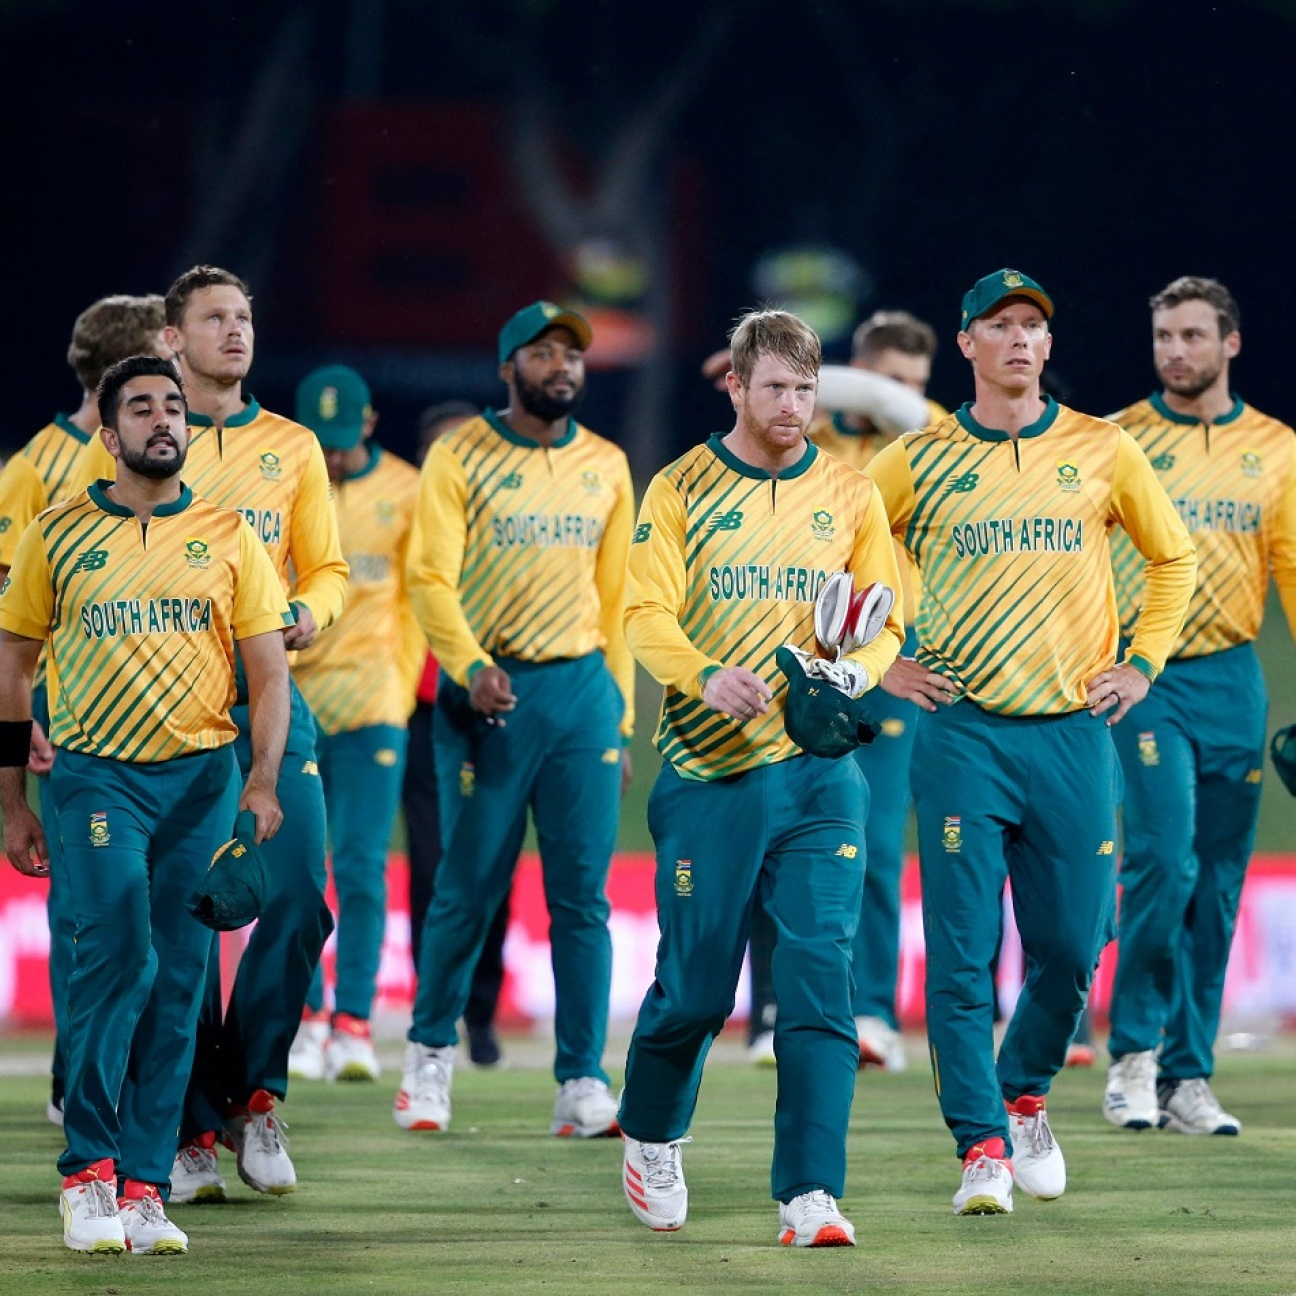 SA vs Pak T20Is - South Africa review - A problem of plenty at the top and  plenty of problems elsewhere